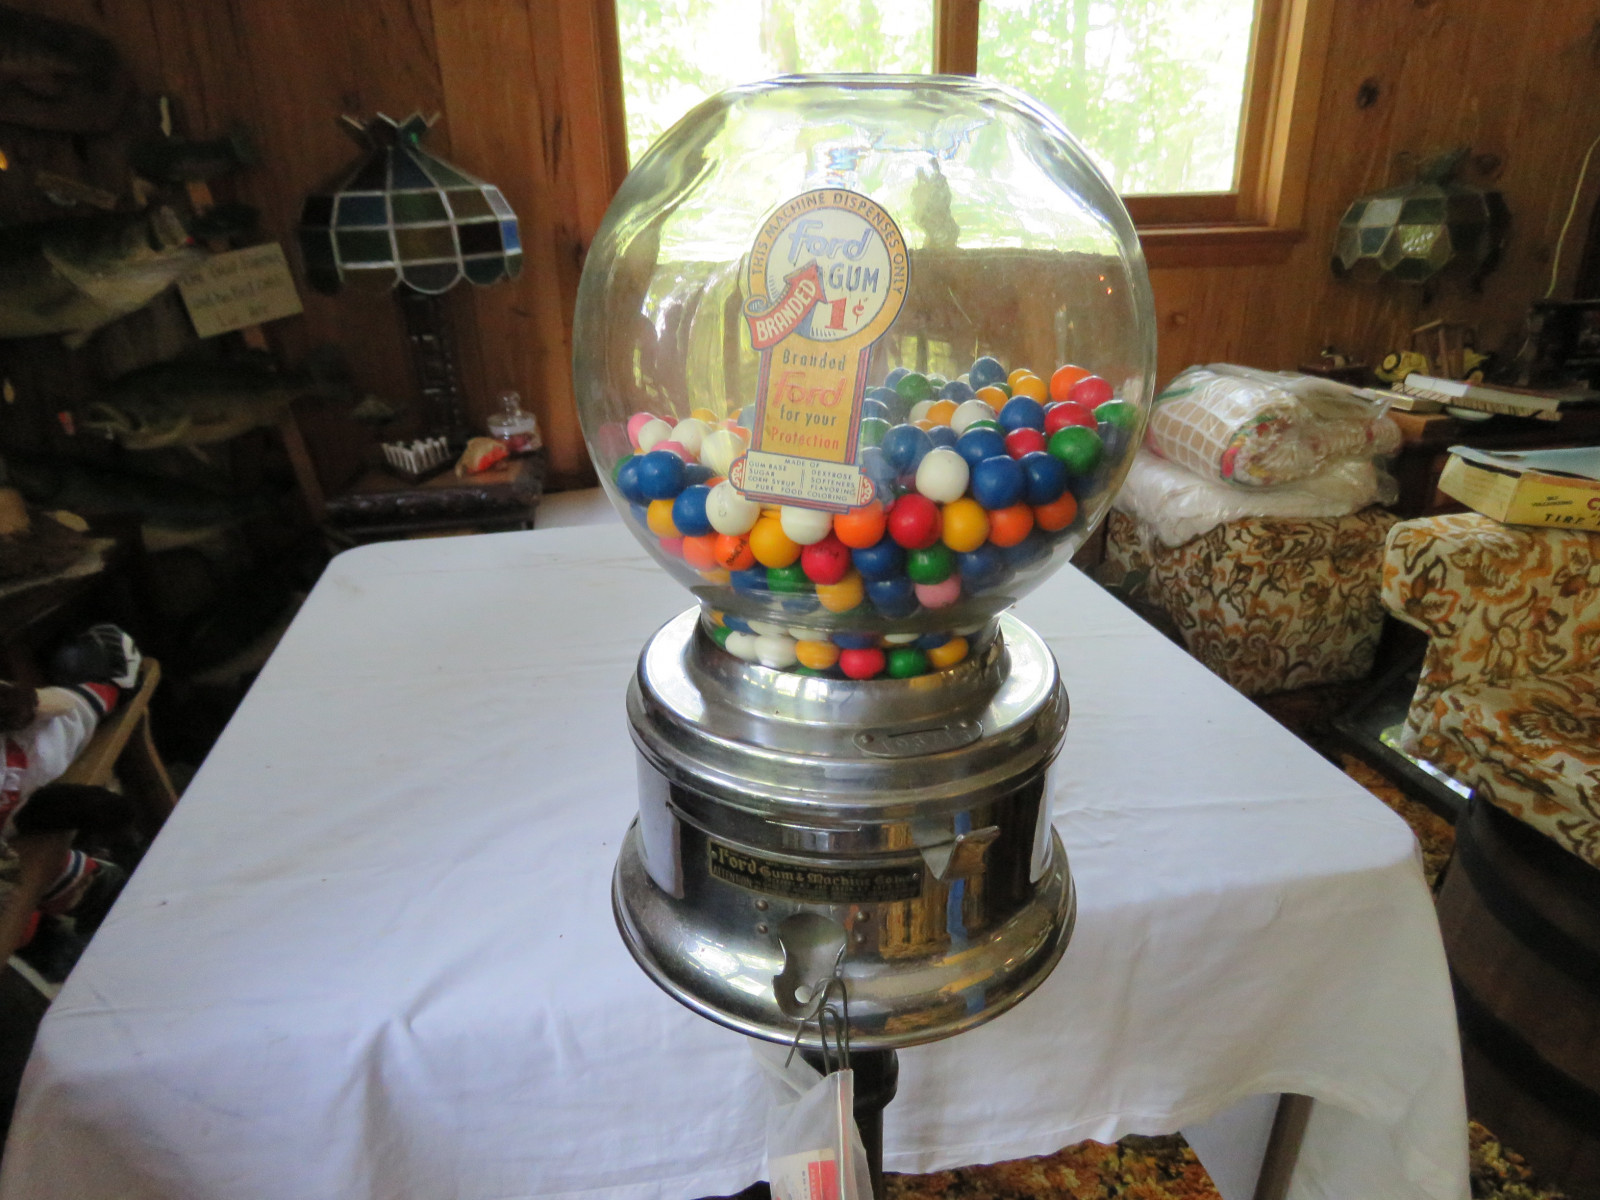 Rare Factory Ford Gumball Machine with Ford papers and Gumballs-Glass - Image 2